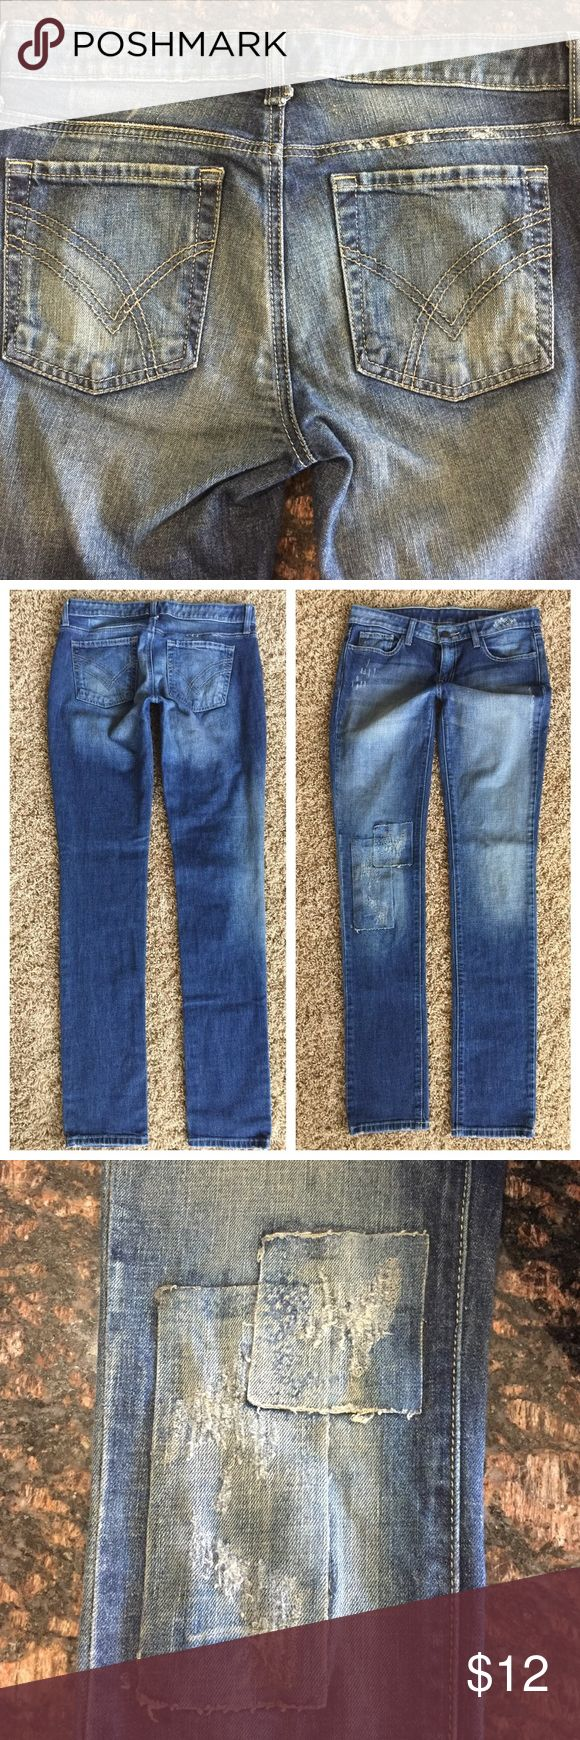 William Rast skinny jeans 28 Factory made patched knees, skinny jeans with stretch, waist is 16.5 inches flat, rise is 8.25 inches, inseam 34 inches. William Rast Jeans Skinny